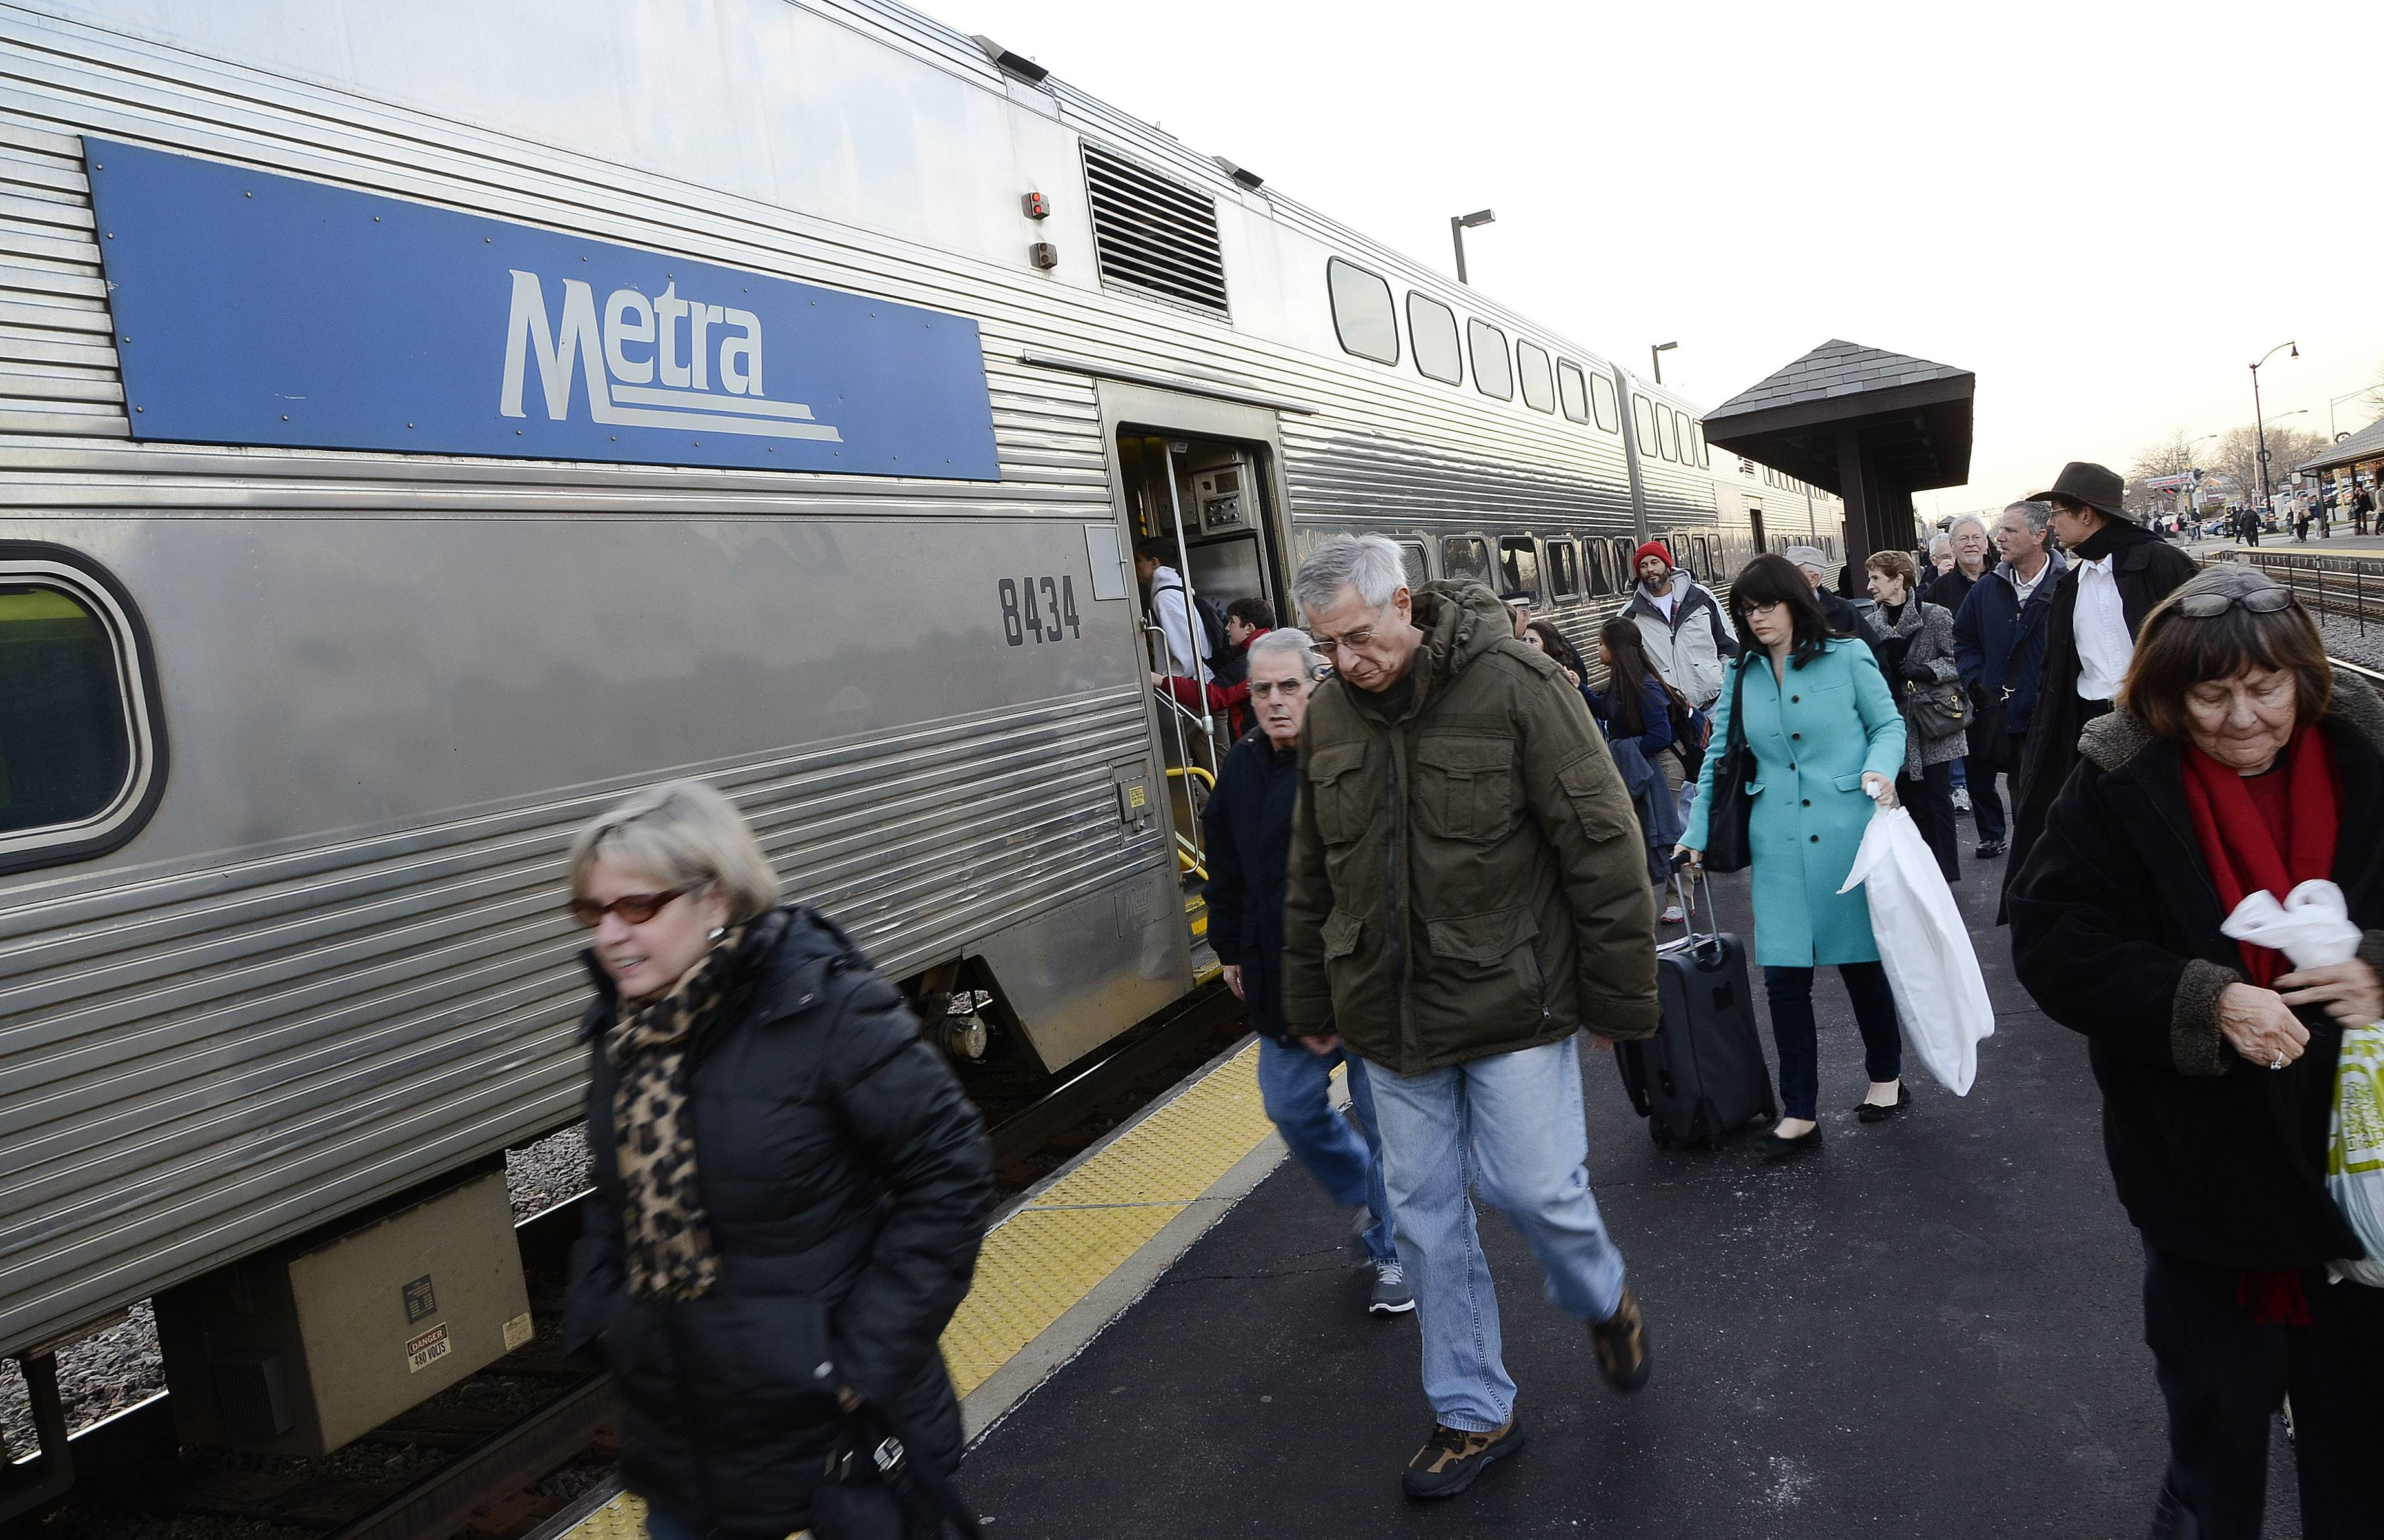 Metra commuters get hit with a third fare hike in as many years this Wednesday. Riders on average will pay another $2.75 for a 10-ride ticket and $11.75 for a monthly pass.